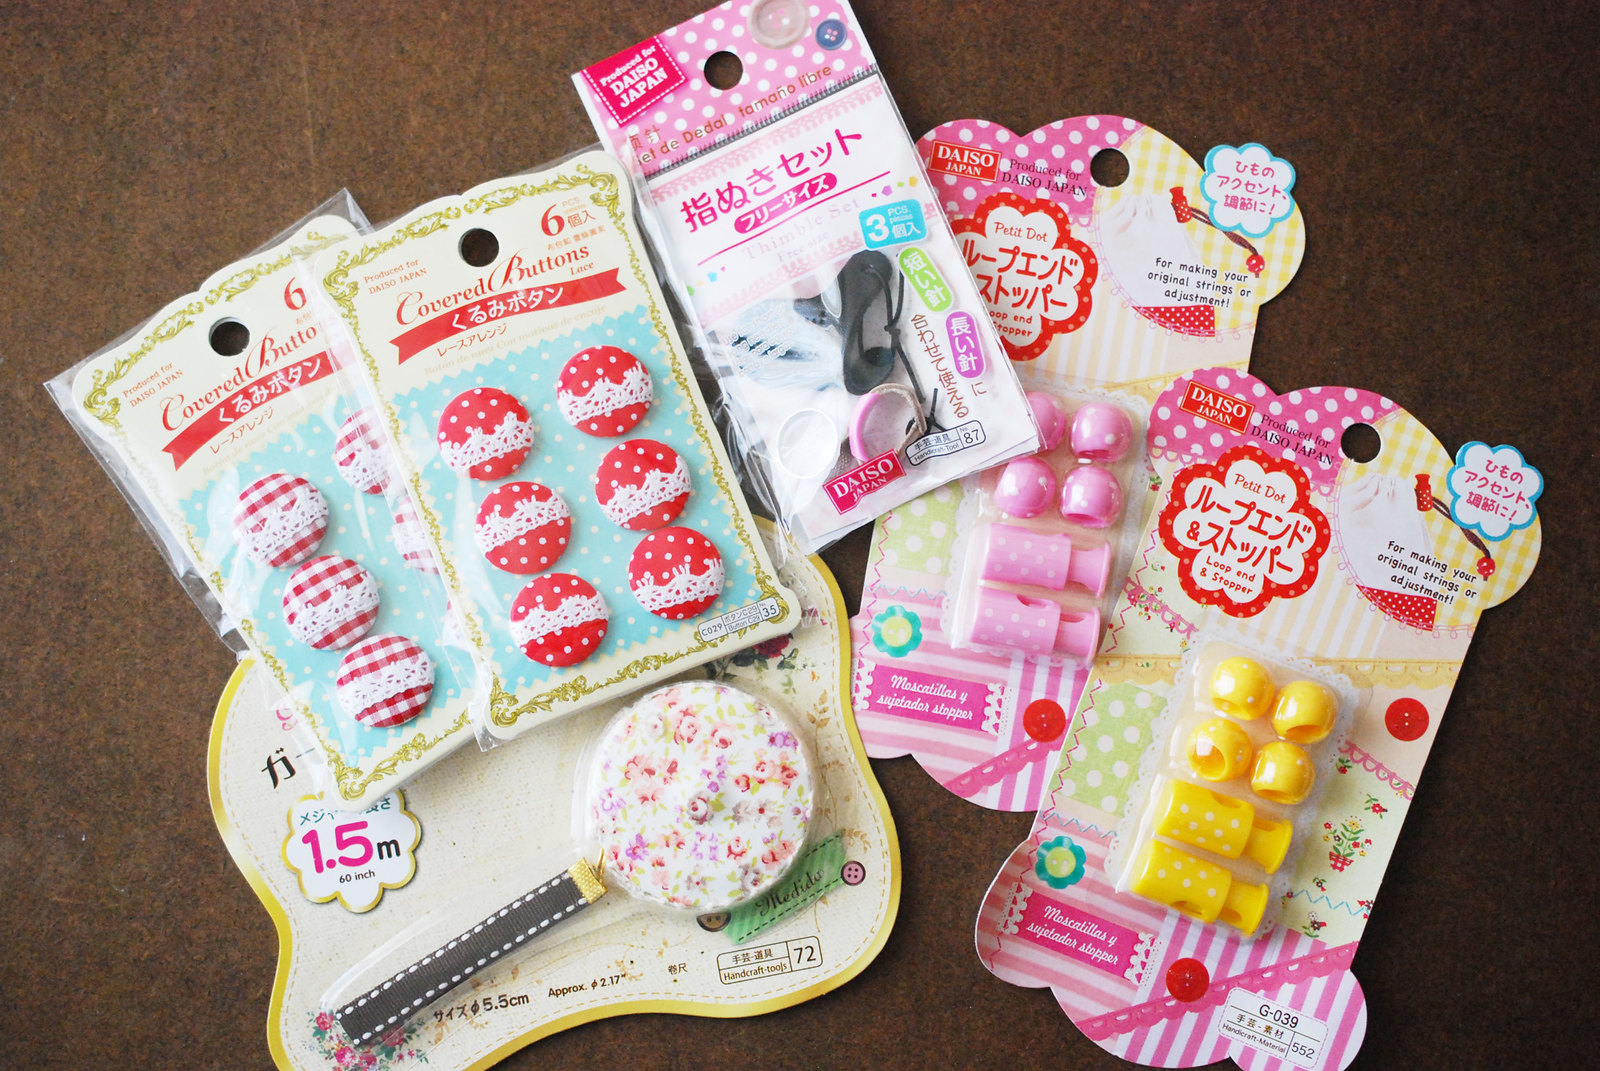 Daiso shopping trips spoils